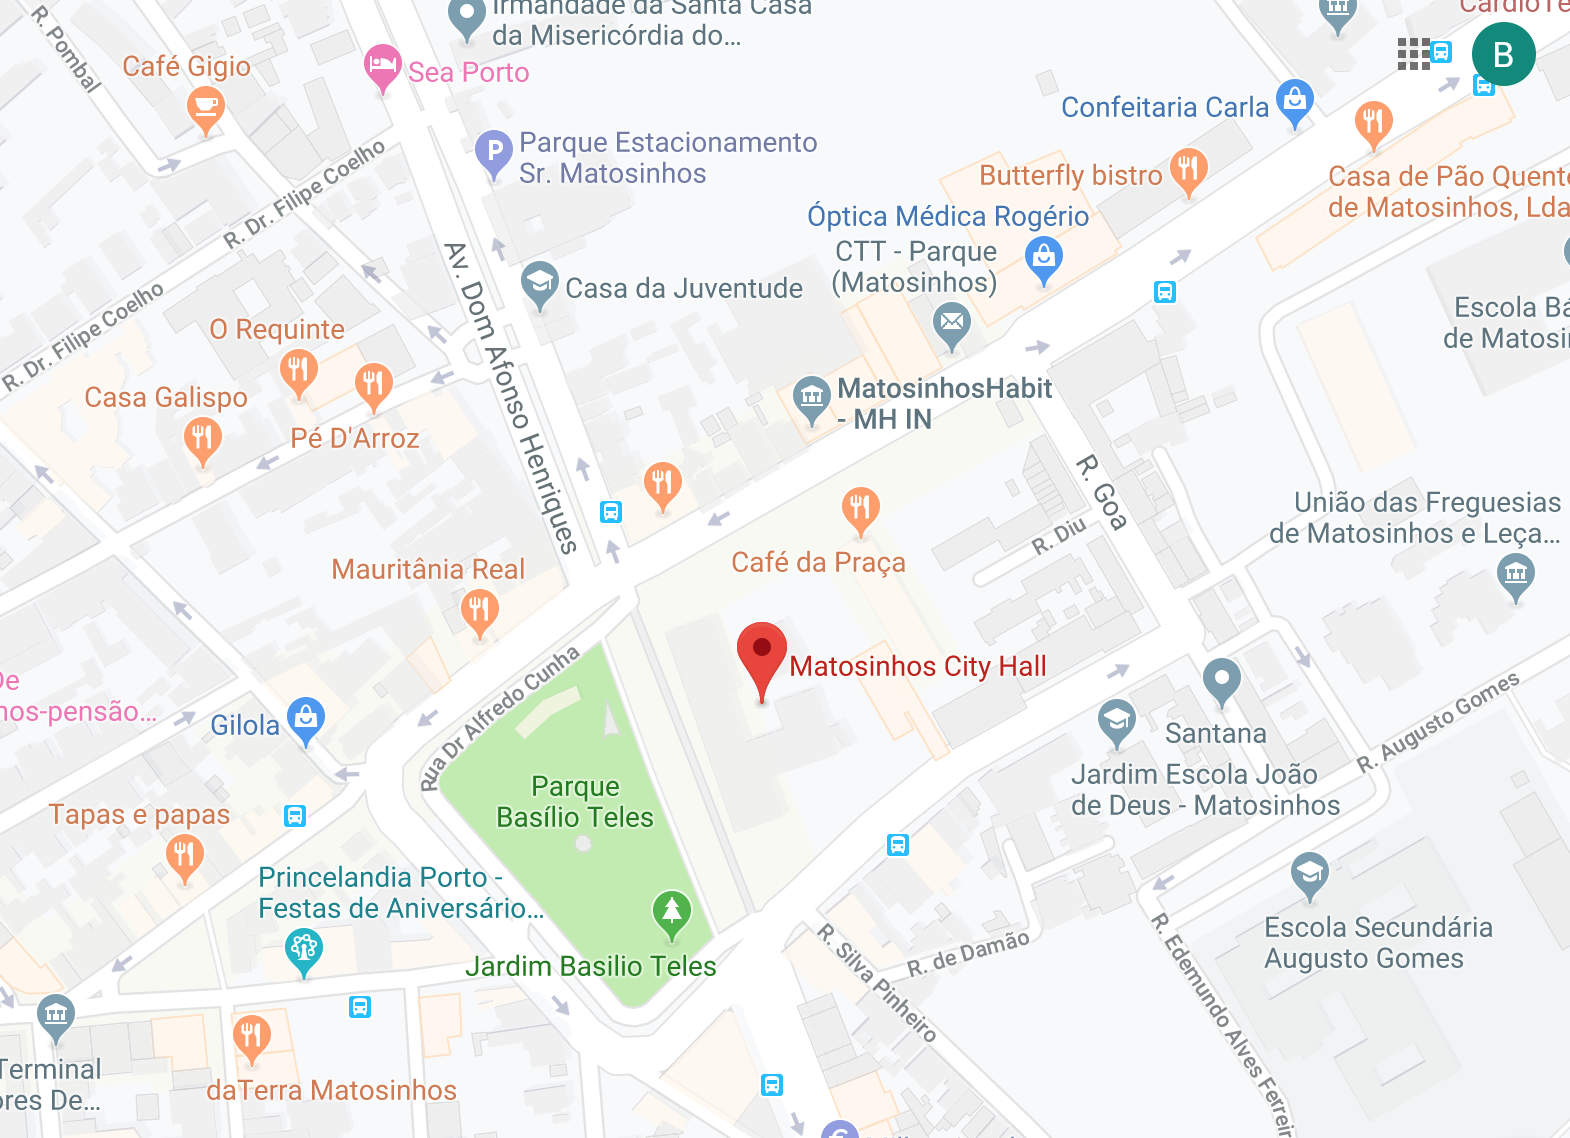 Map City Hall Matosinhos